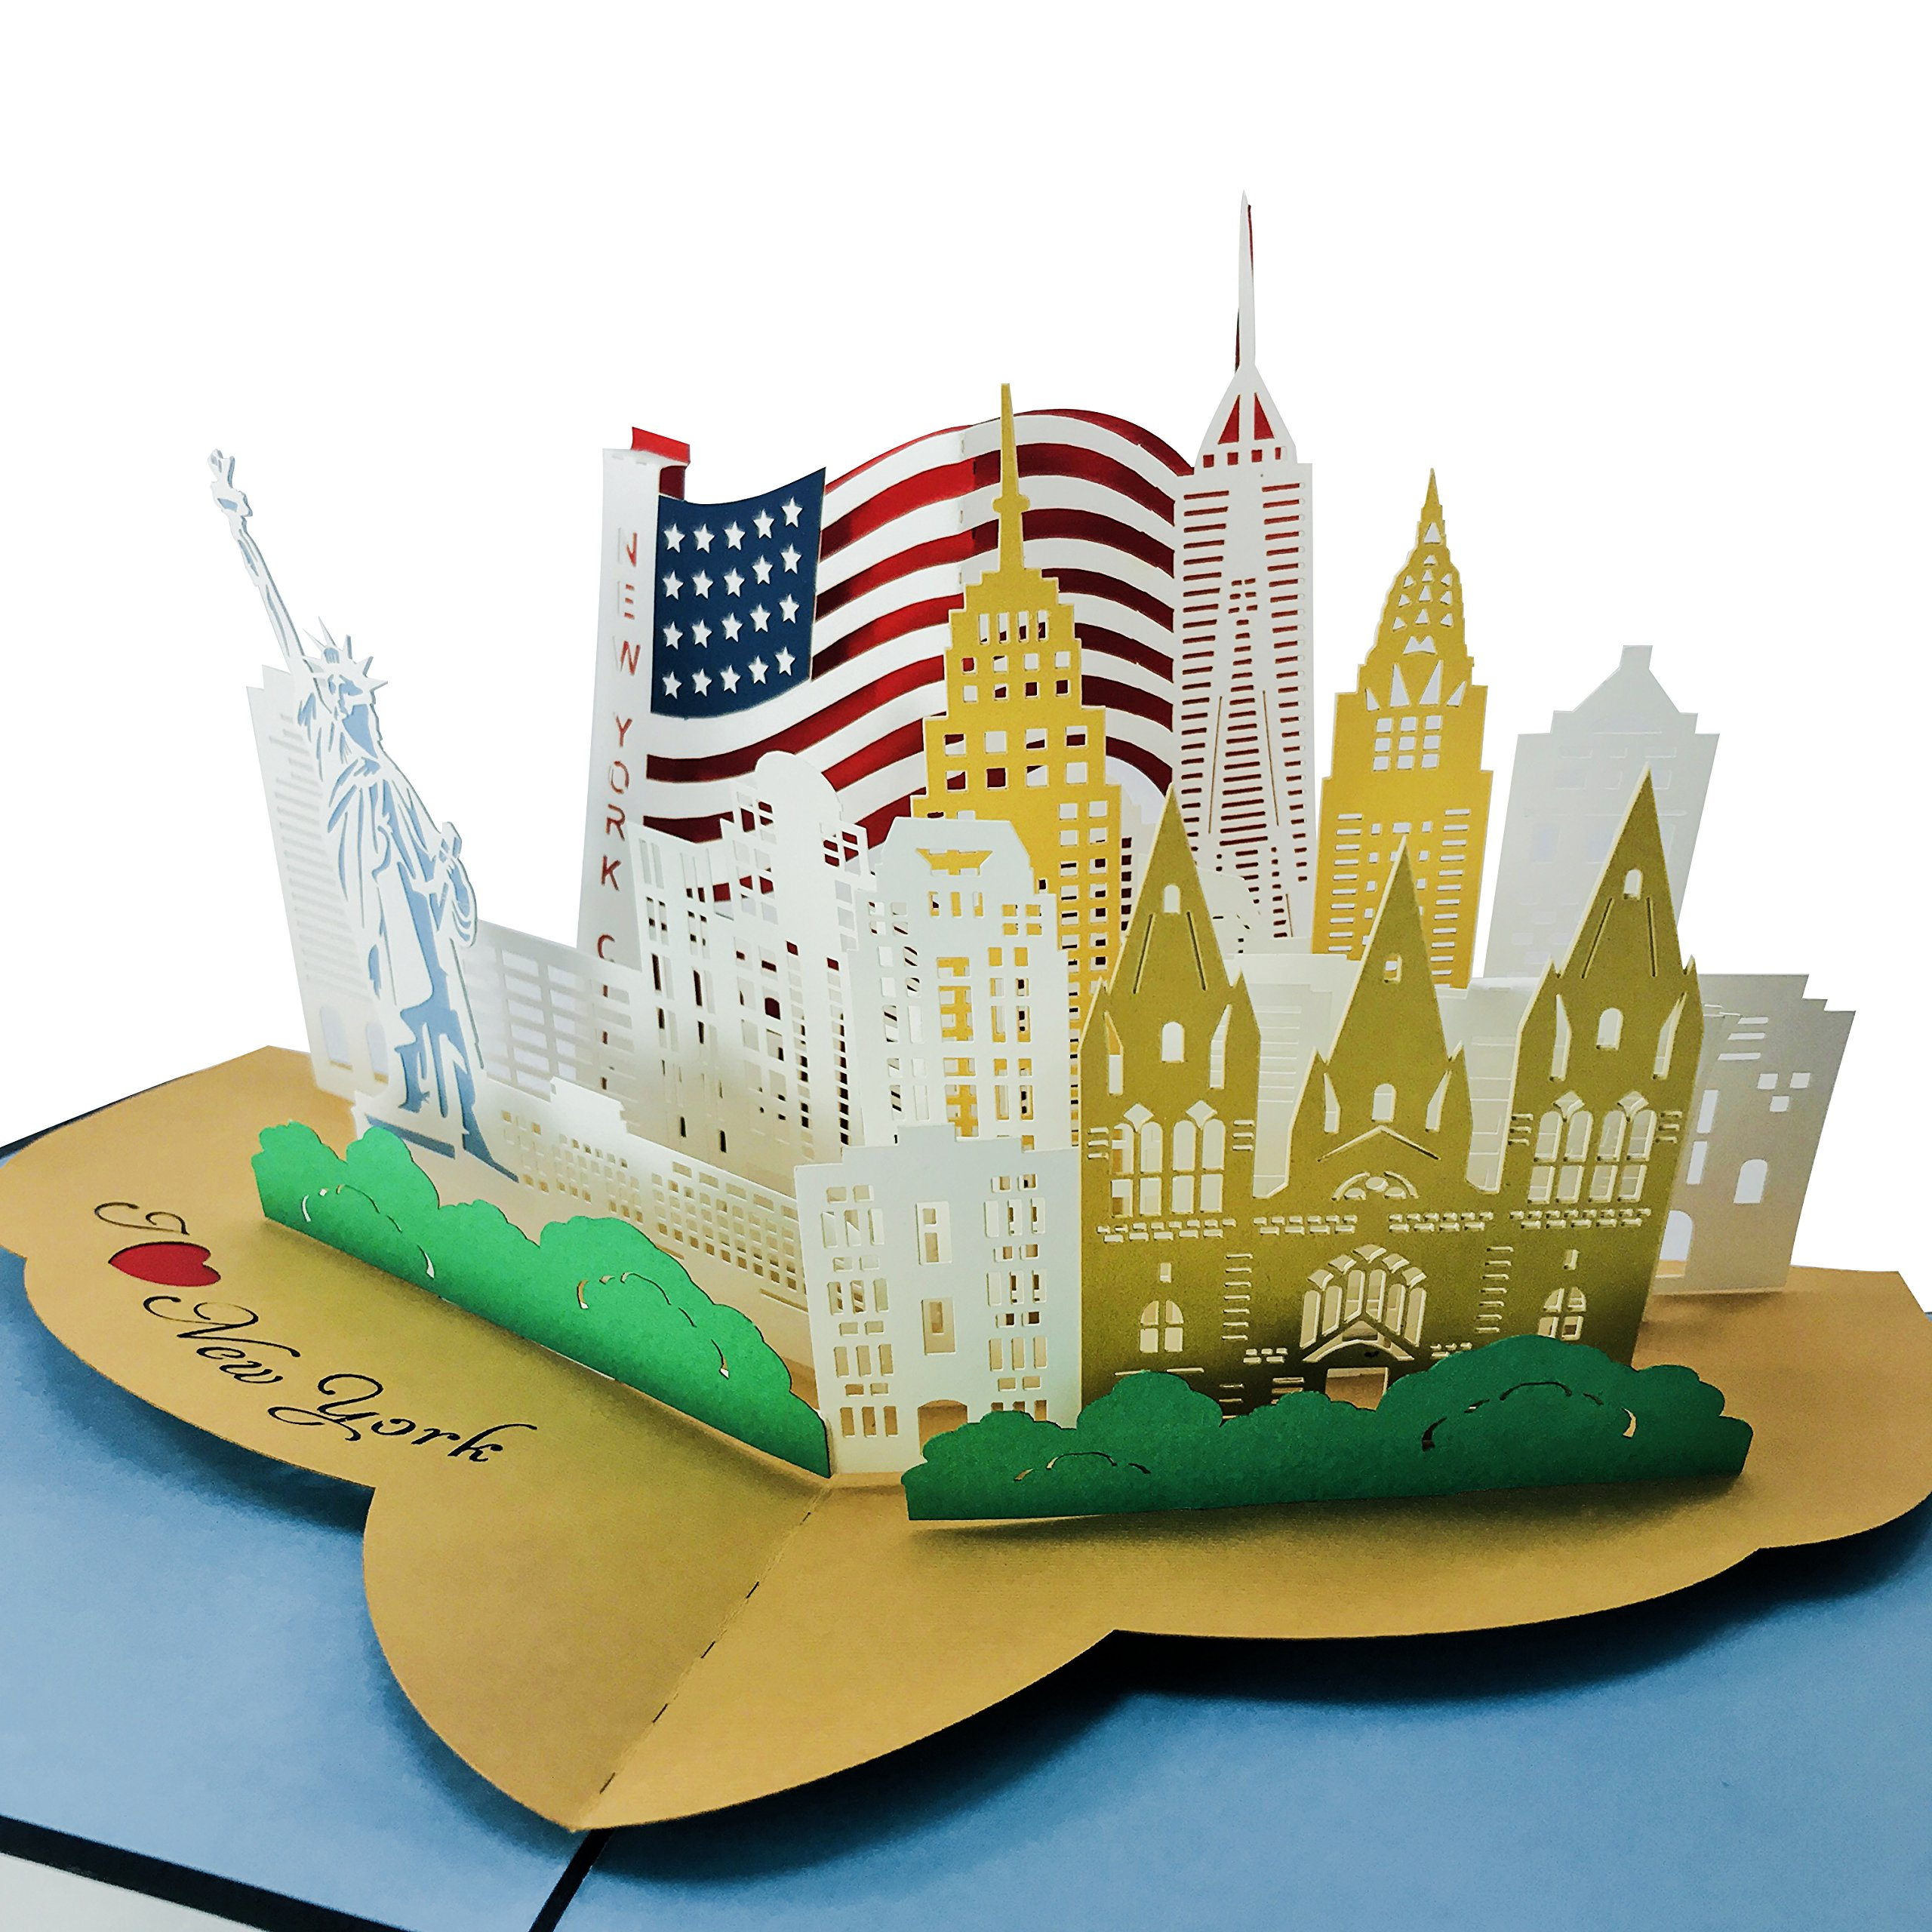 I Love New York City - 3D Pop Up Greeting Card for All Occasions - Travel, Love, Birthday, Retirement, Congrats, Thank You, Get Well, Christmas - Fold Flat, Envelope Included by WOWPAPERART